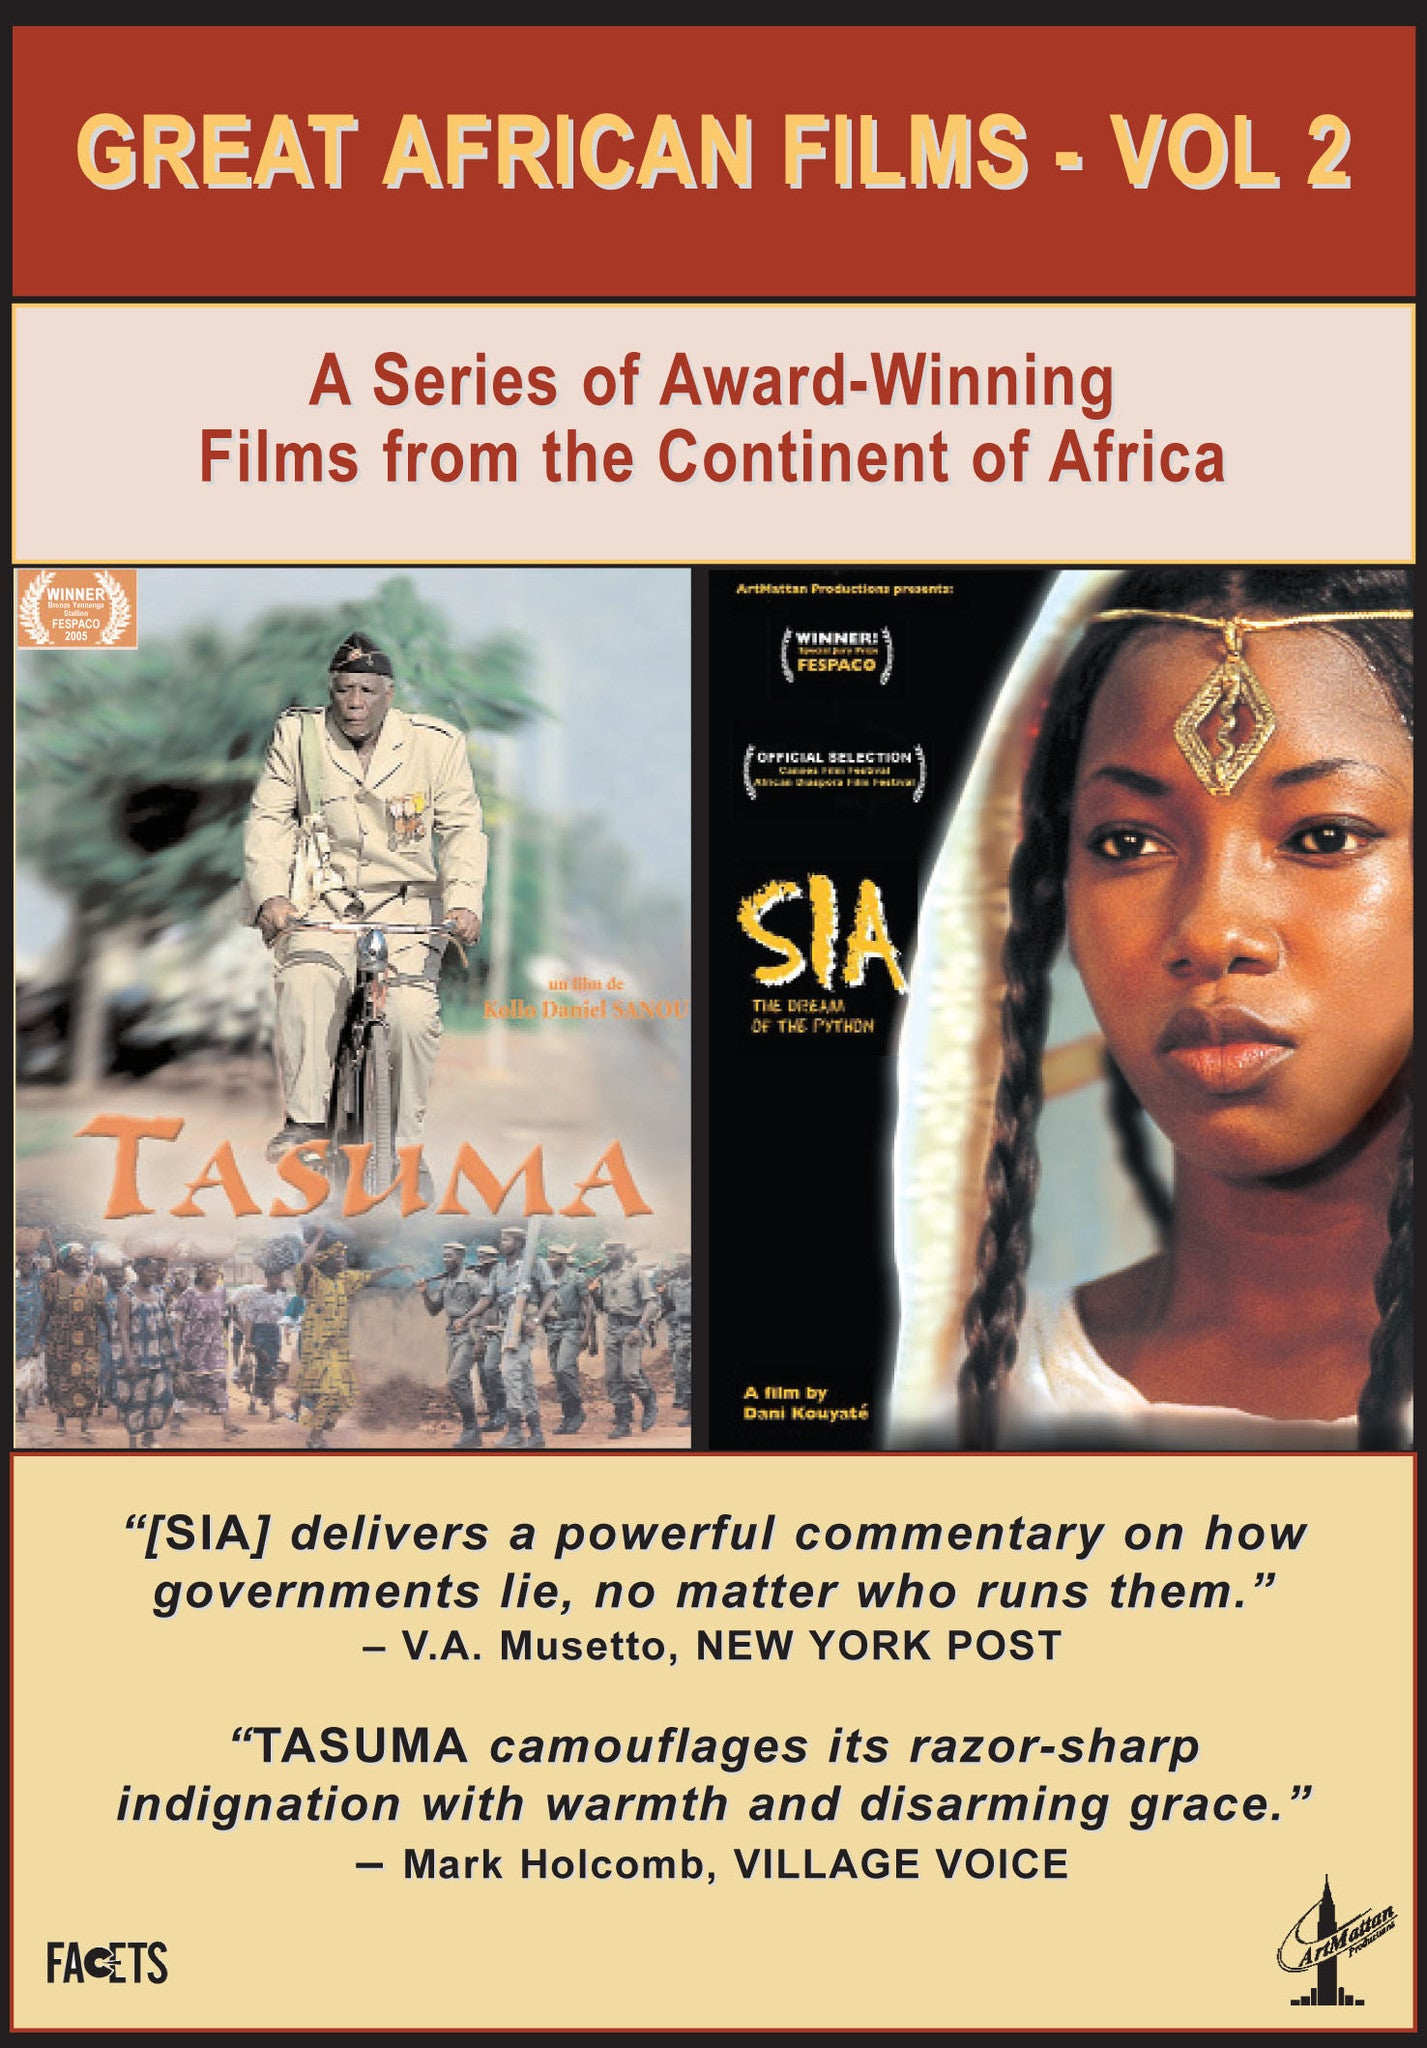 Great African Films - Vol. 2